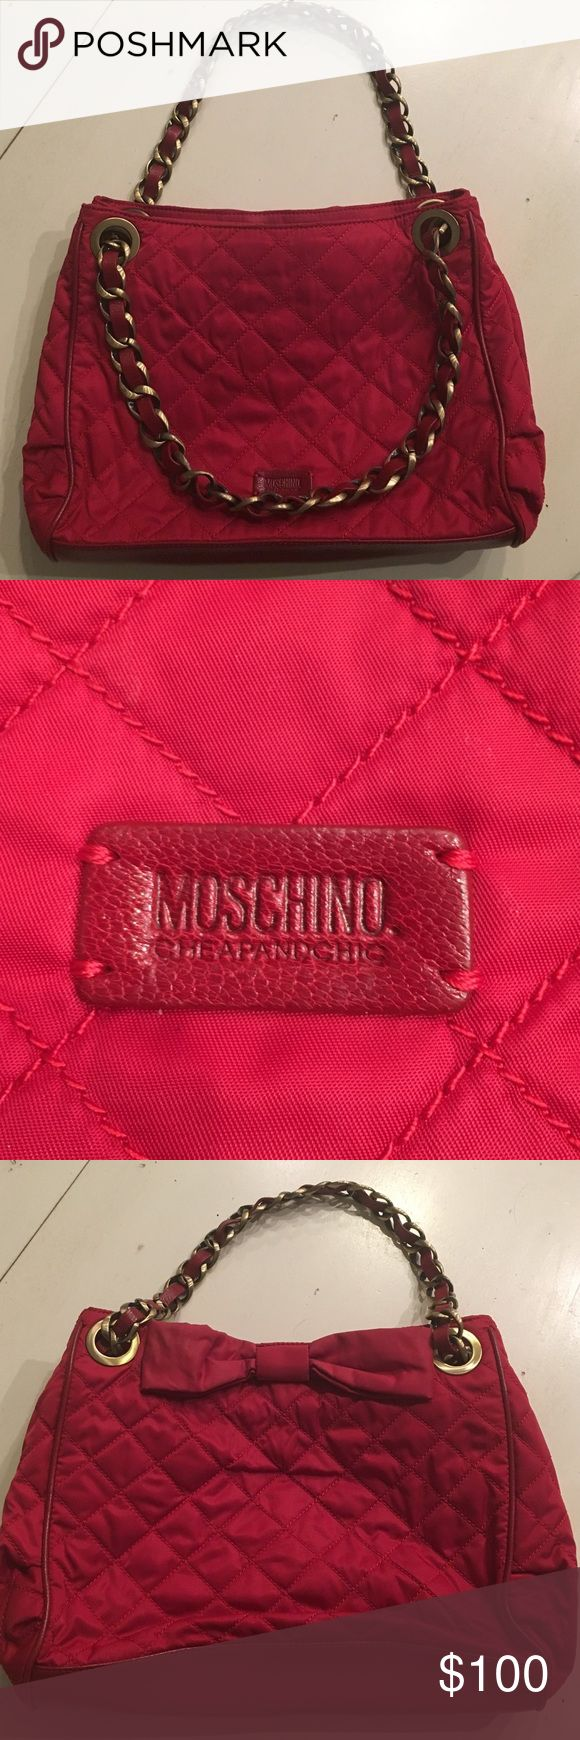 Red Used Moschino Quilted Shoulder Bag Red used quilted Moschino shoulder bag. Pockets and zippers on inside. 12 inches by 9 inches by 3 inches. Negotiable on price. Beautiful bag!! Willing to sell in bundle. Moschino Bags Shoulder Bags